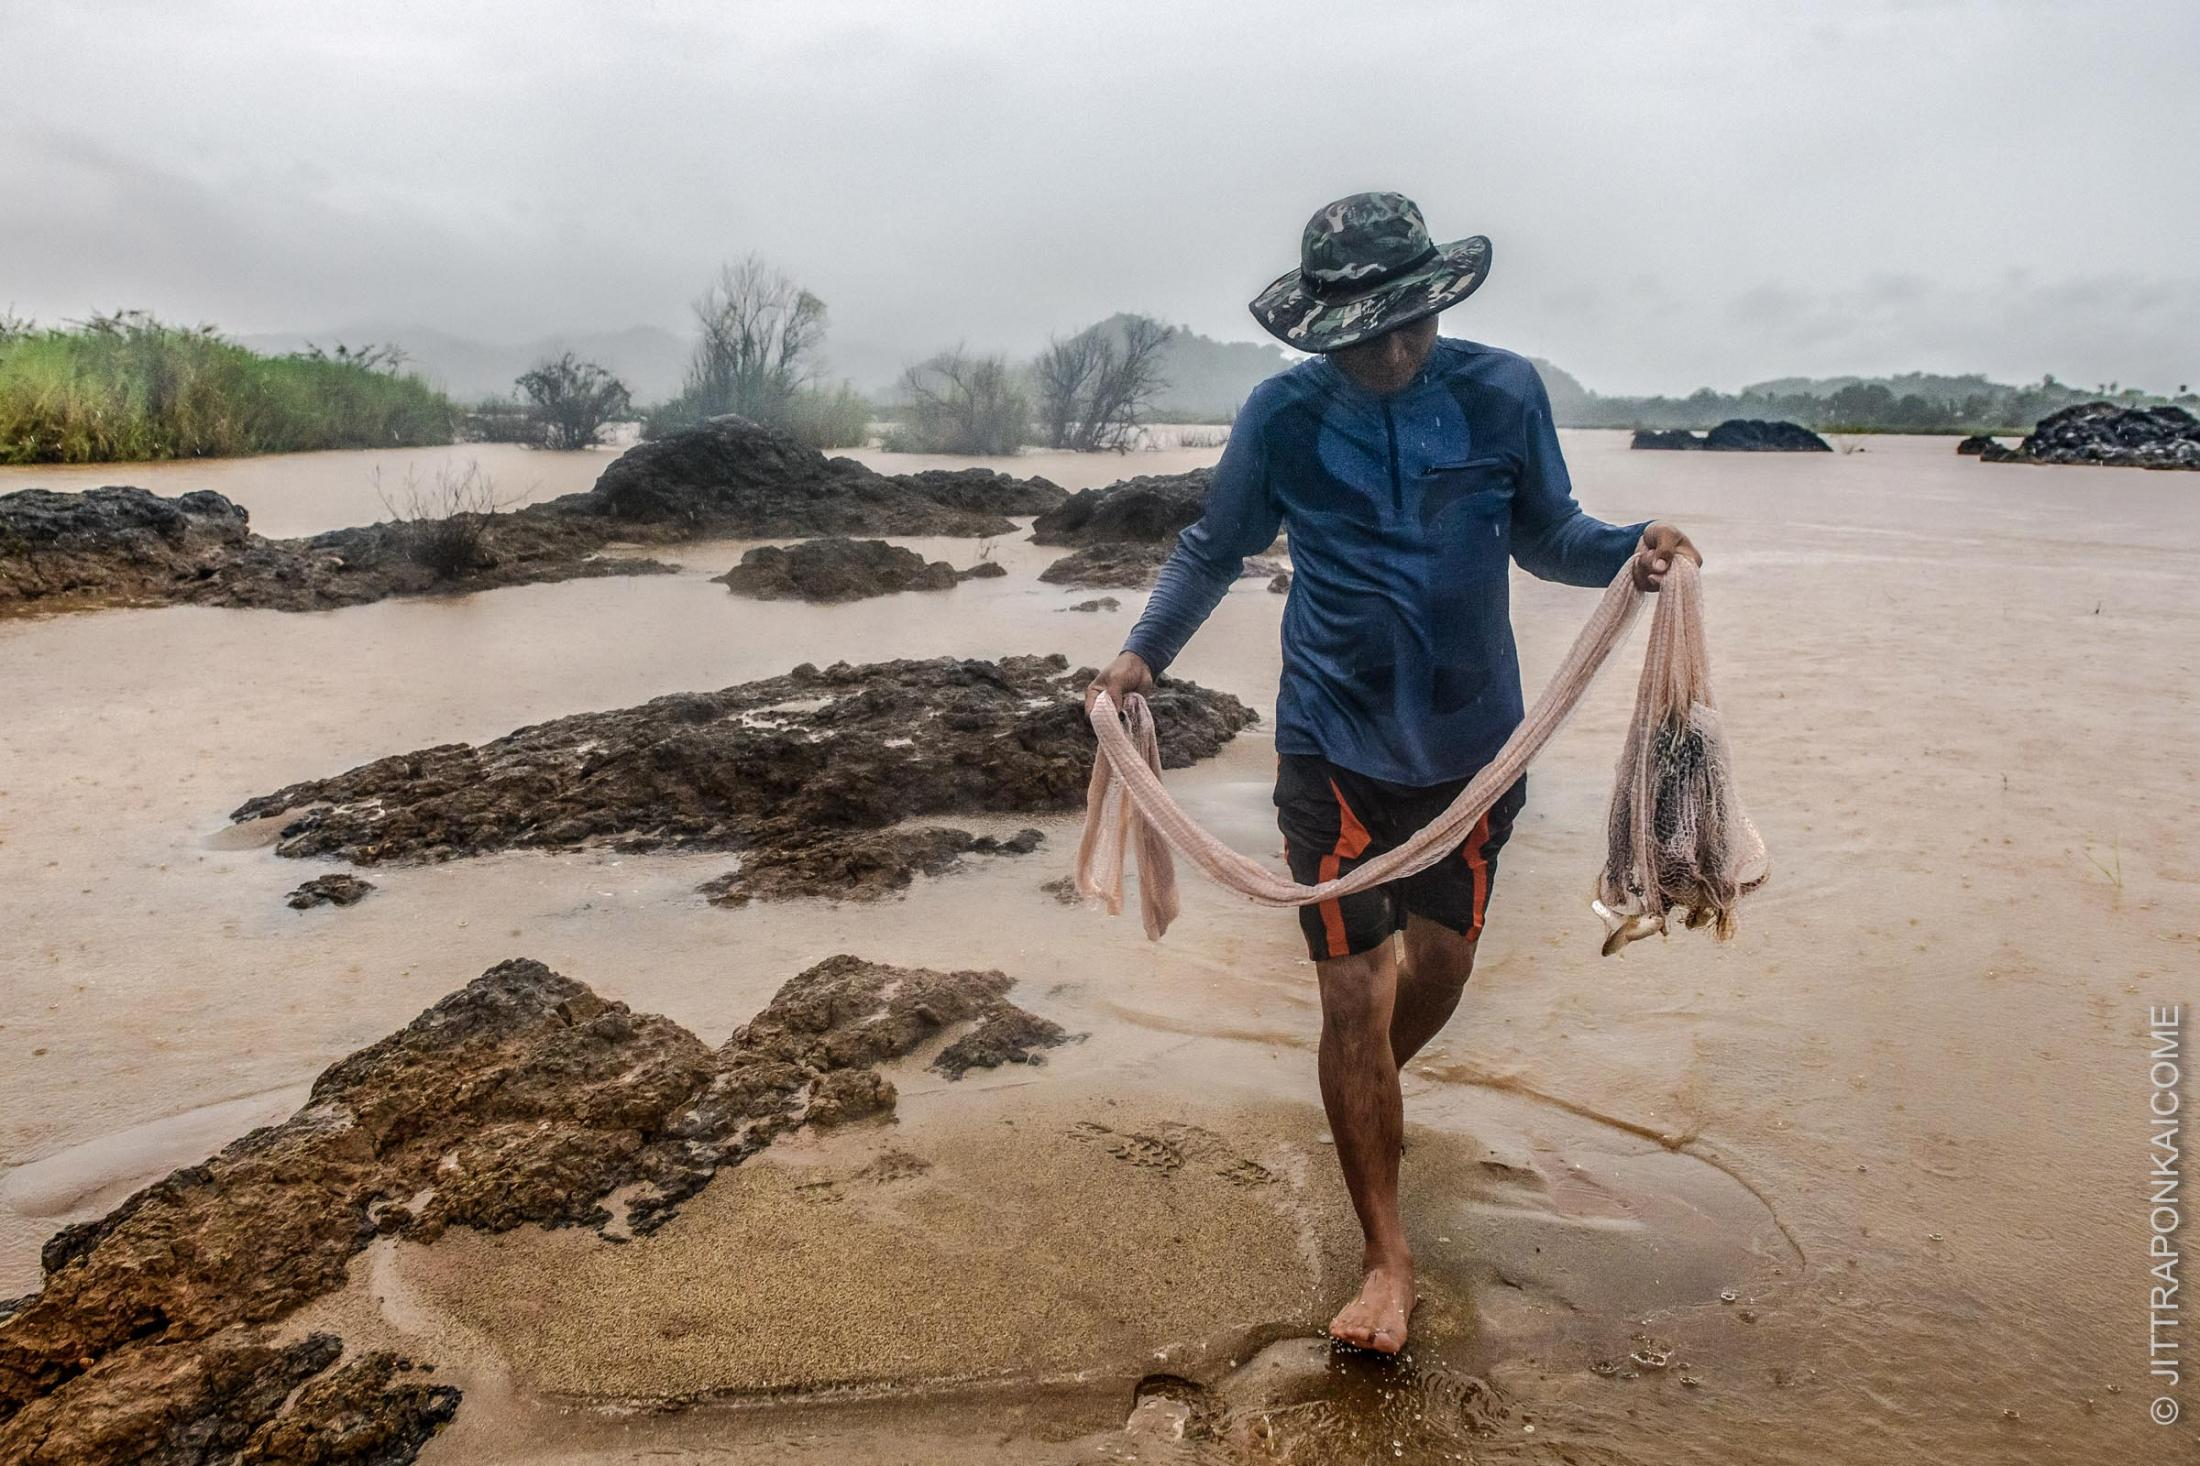 During the rainy season, a fisherman tries to catch fish in the rapids amidst the rocks, raised due to the low water level of the Mekong River. These historically low levels are caused by the unexpected control of water inflow from upstream dams in China and Laos on the Mekong River. Sangkhom district, Nong Khai, Thailand – August 2, 2020.